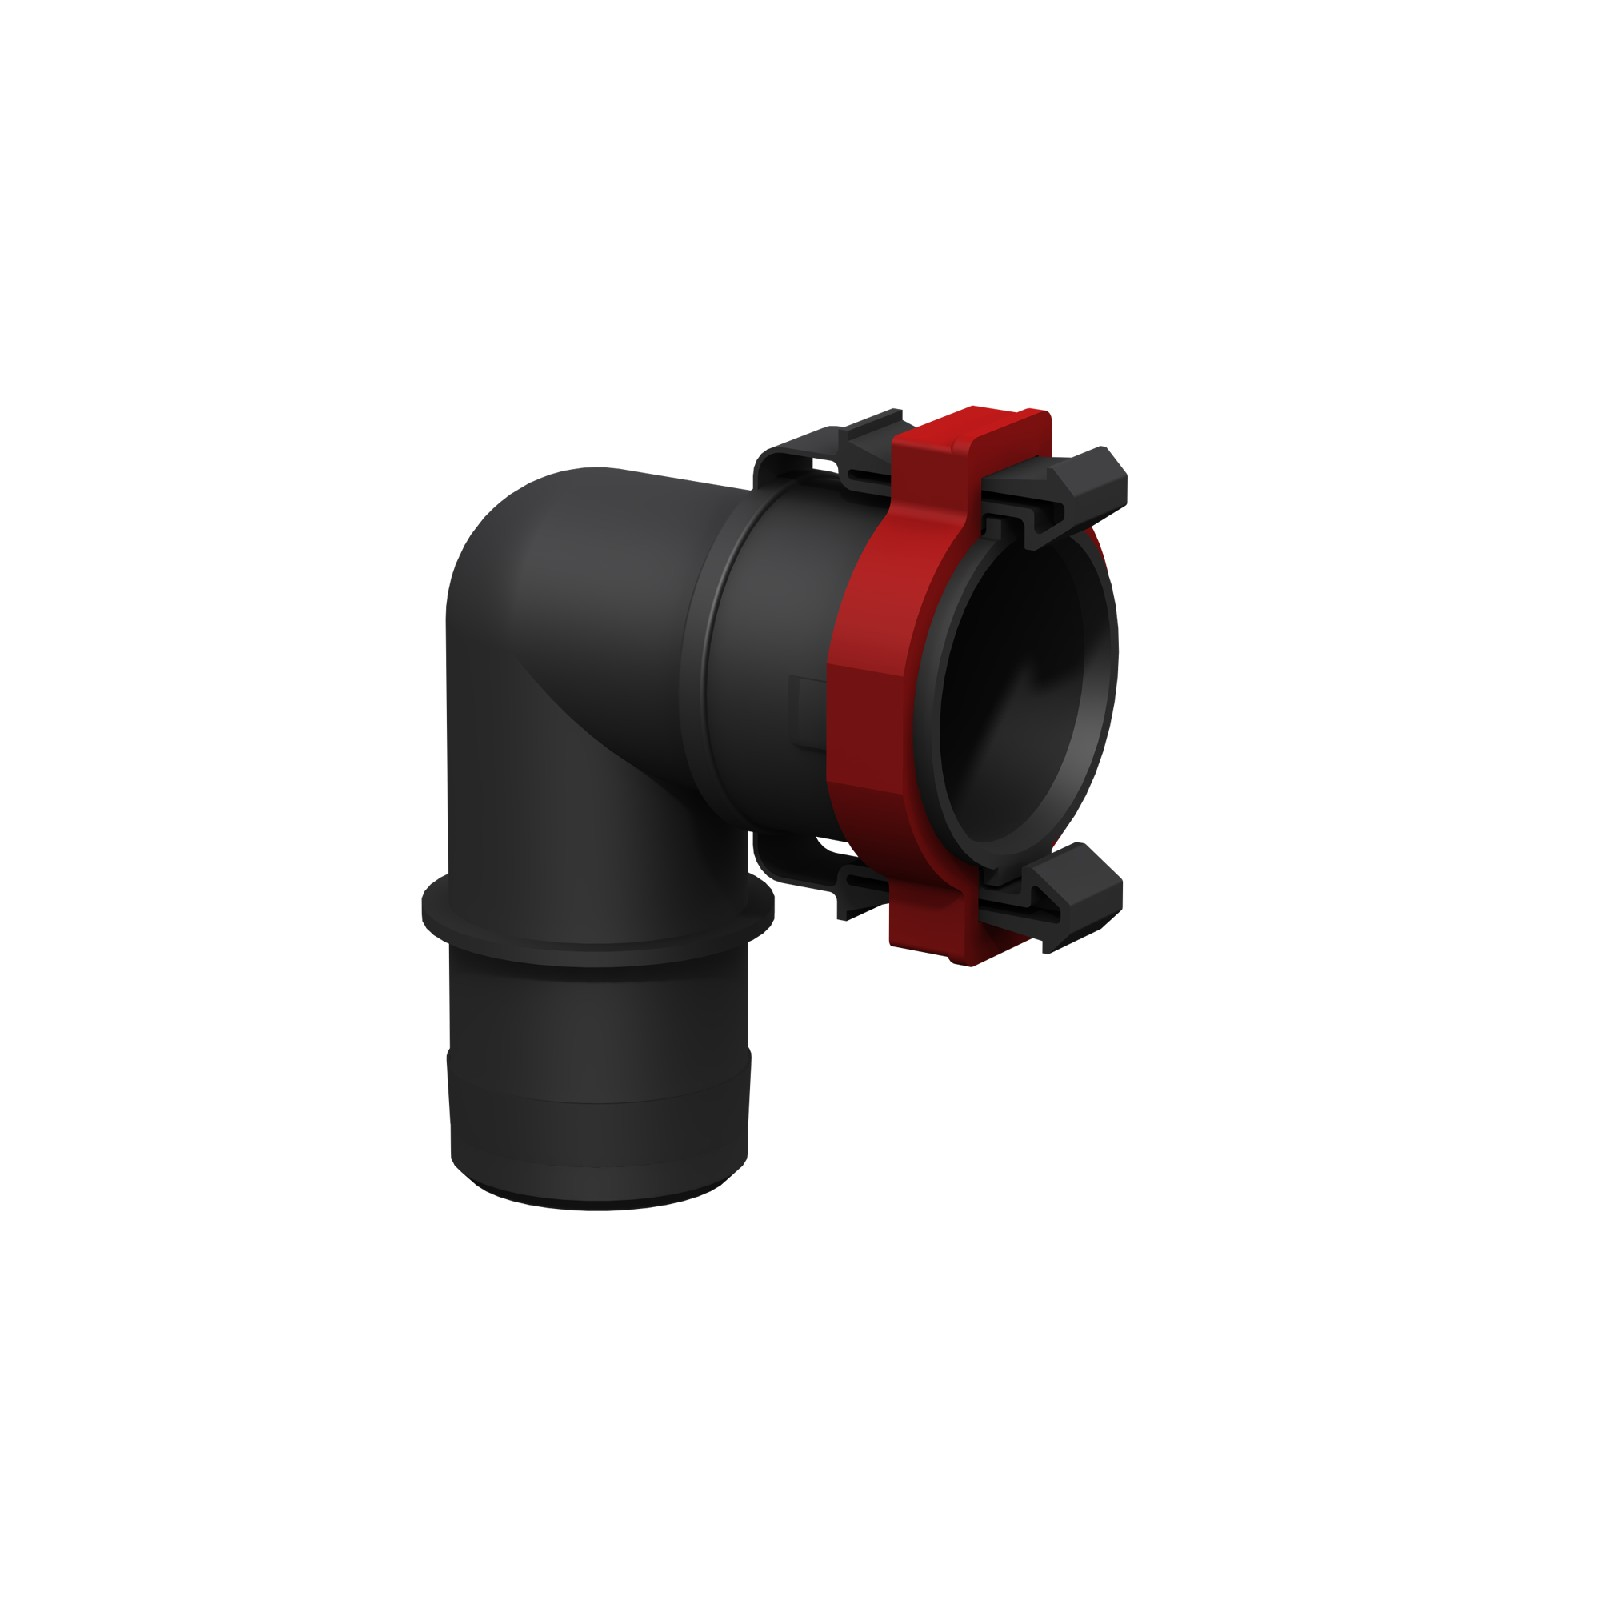 """FLOW-RITE 1 1/8"""" ELBOW QUICK CONNECT SOCKET FATSAC 2018"""